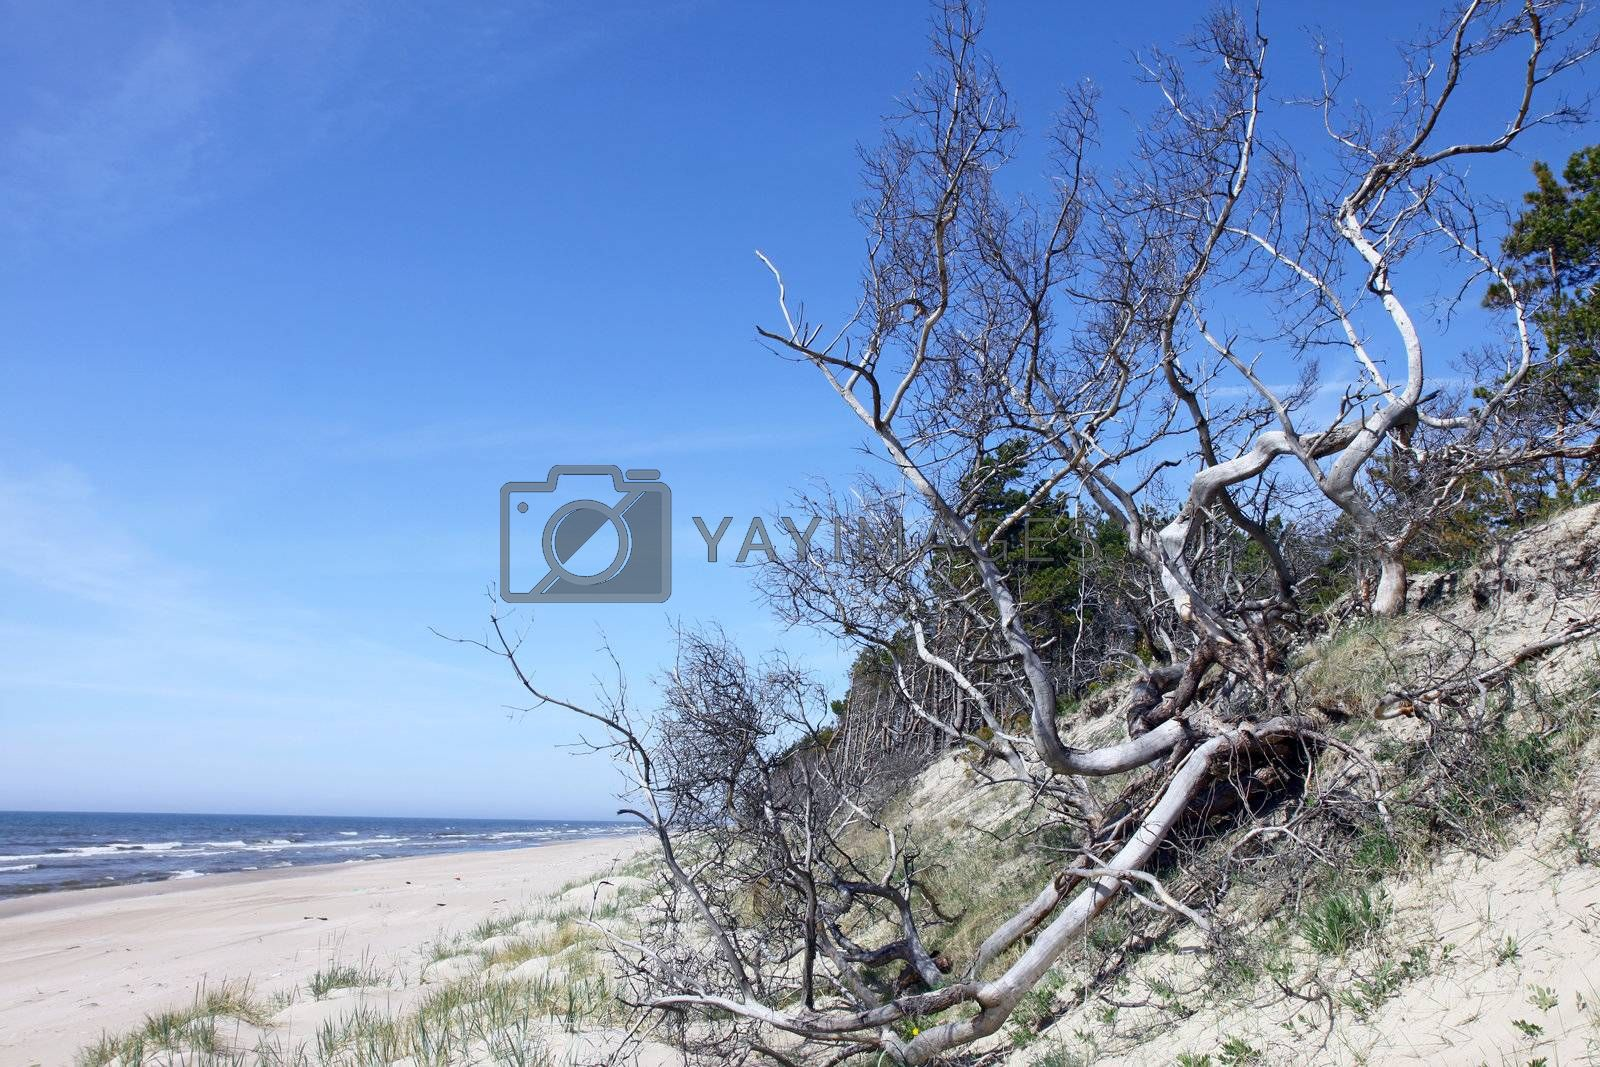 Landscape photograph with dead tree on the sandy beach